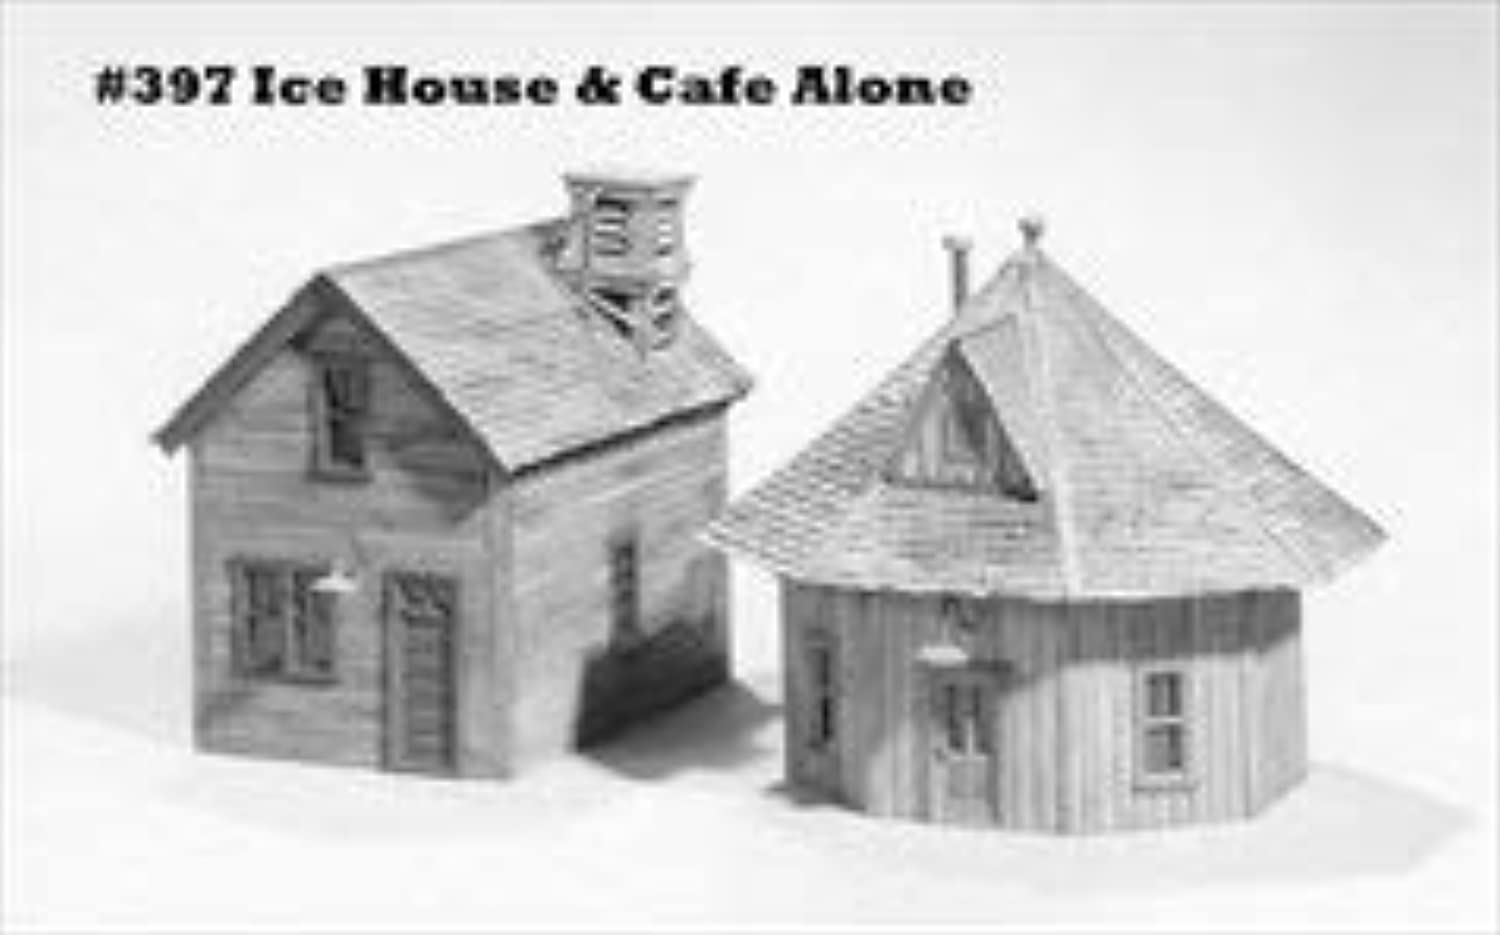 Campbell # 397 Norm 's – Ice House & Cafe Hoスケールキット